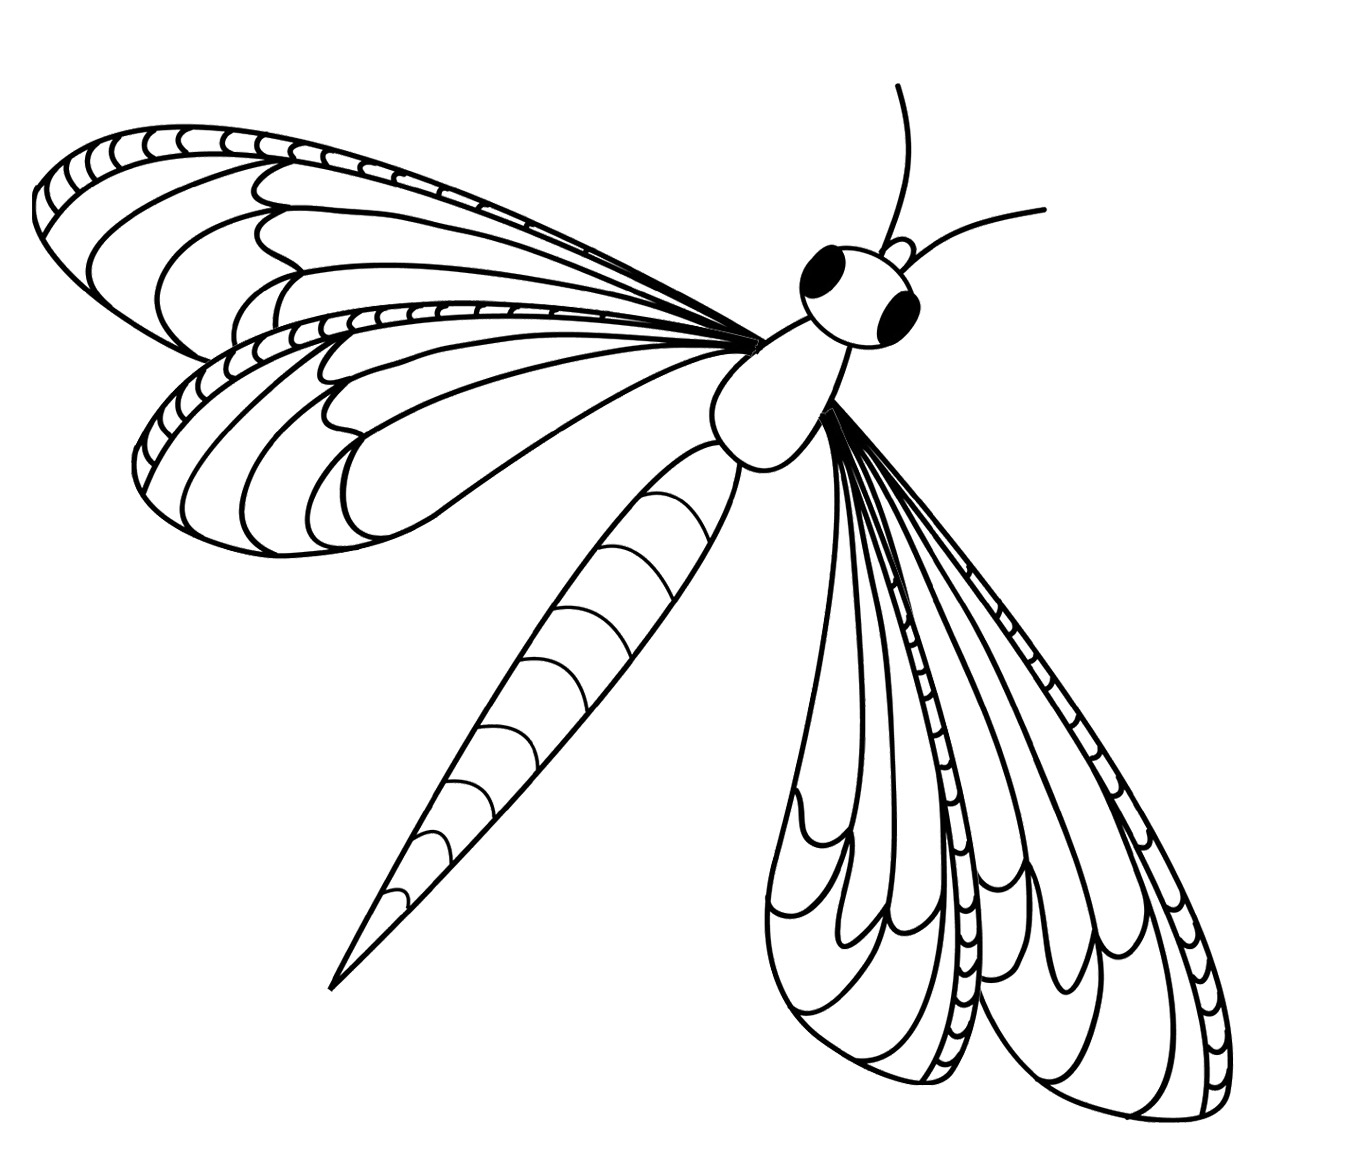 Dragonfly coloring pages kidsuki for Dragonfly coloring pages